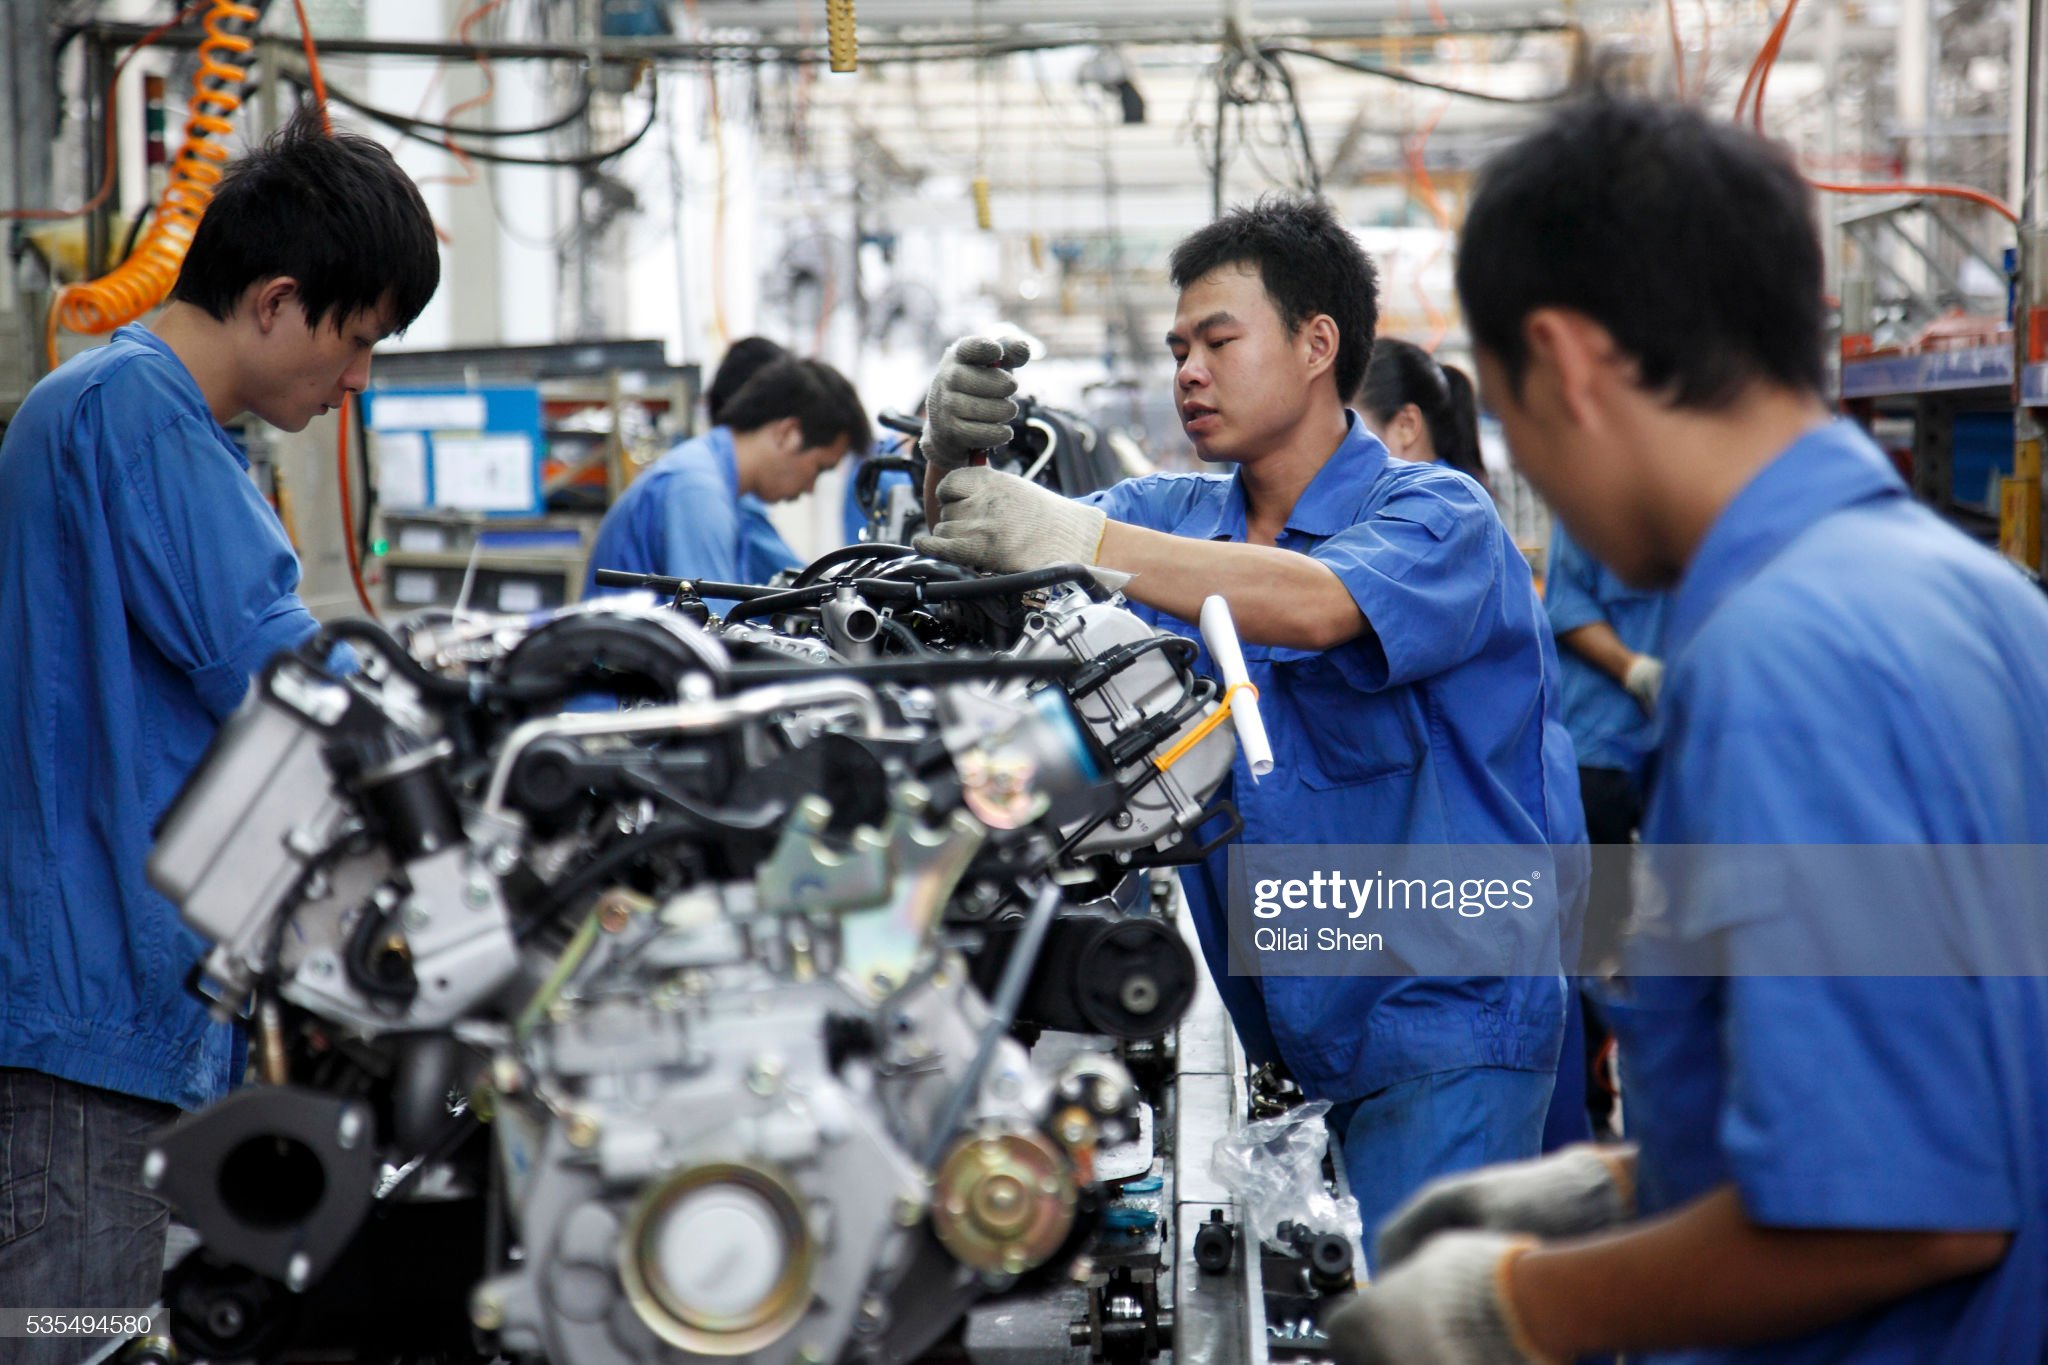 China - Motor Industry - Wuling Automobile Coompany making the Wuling Minivan : News Photo